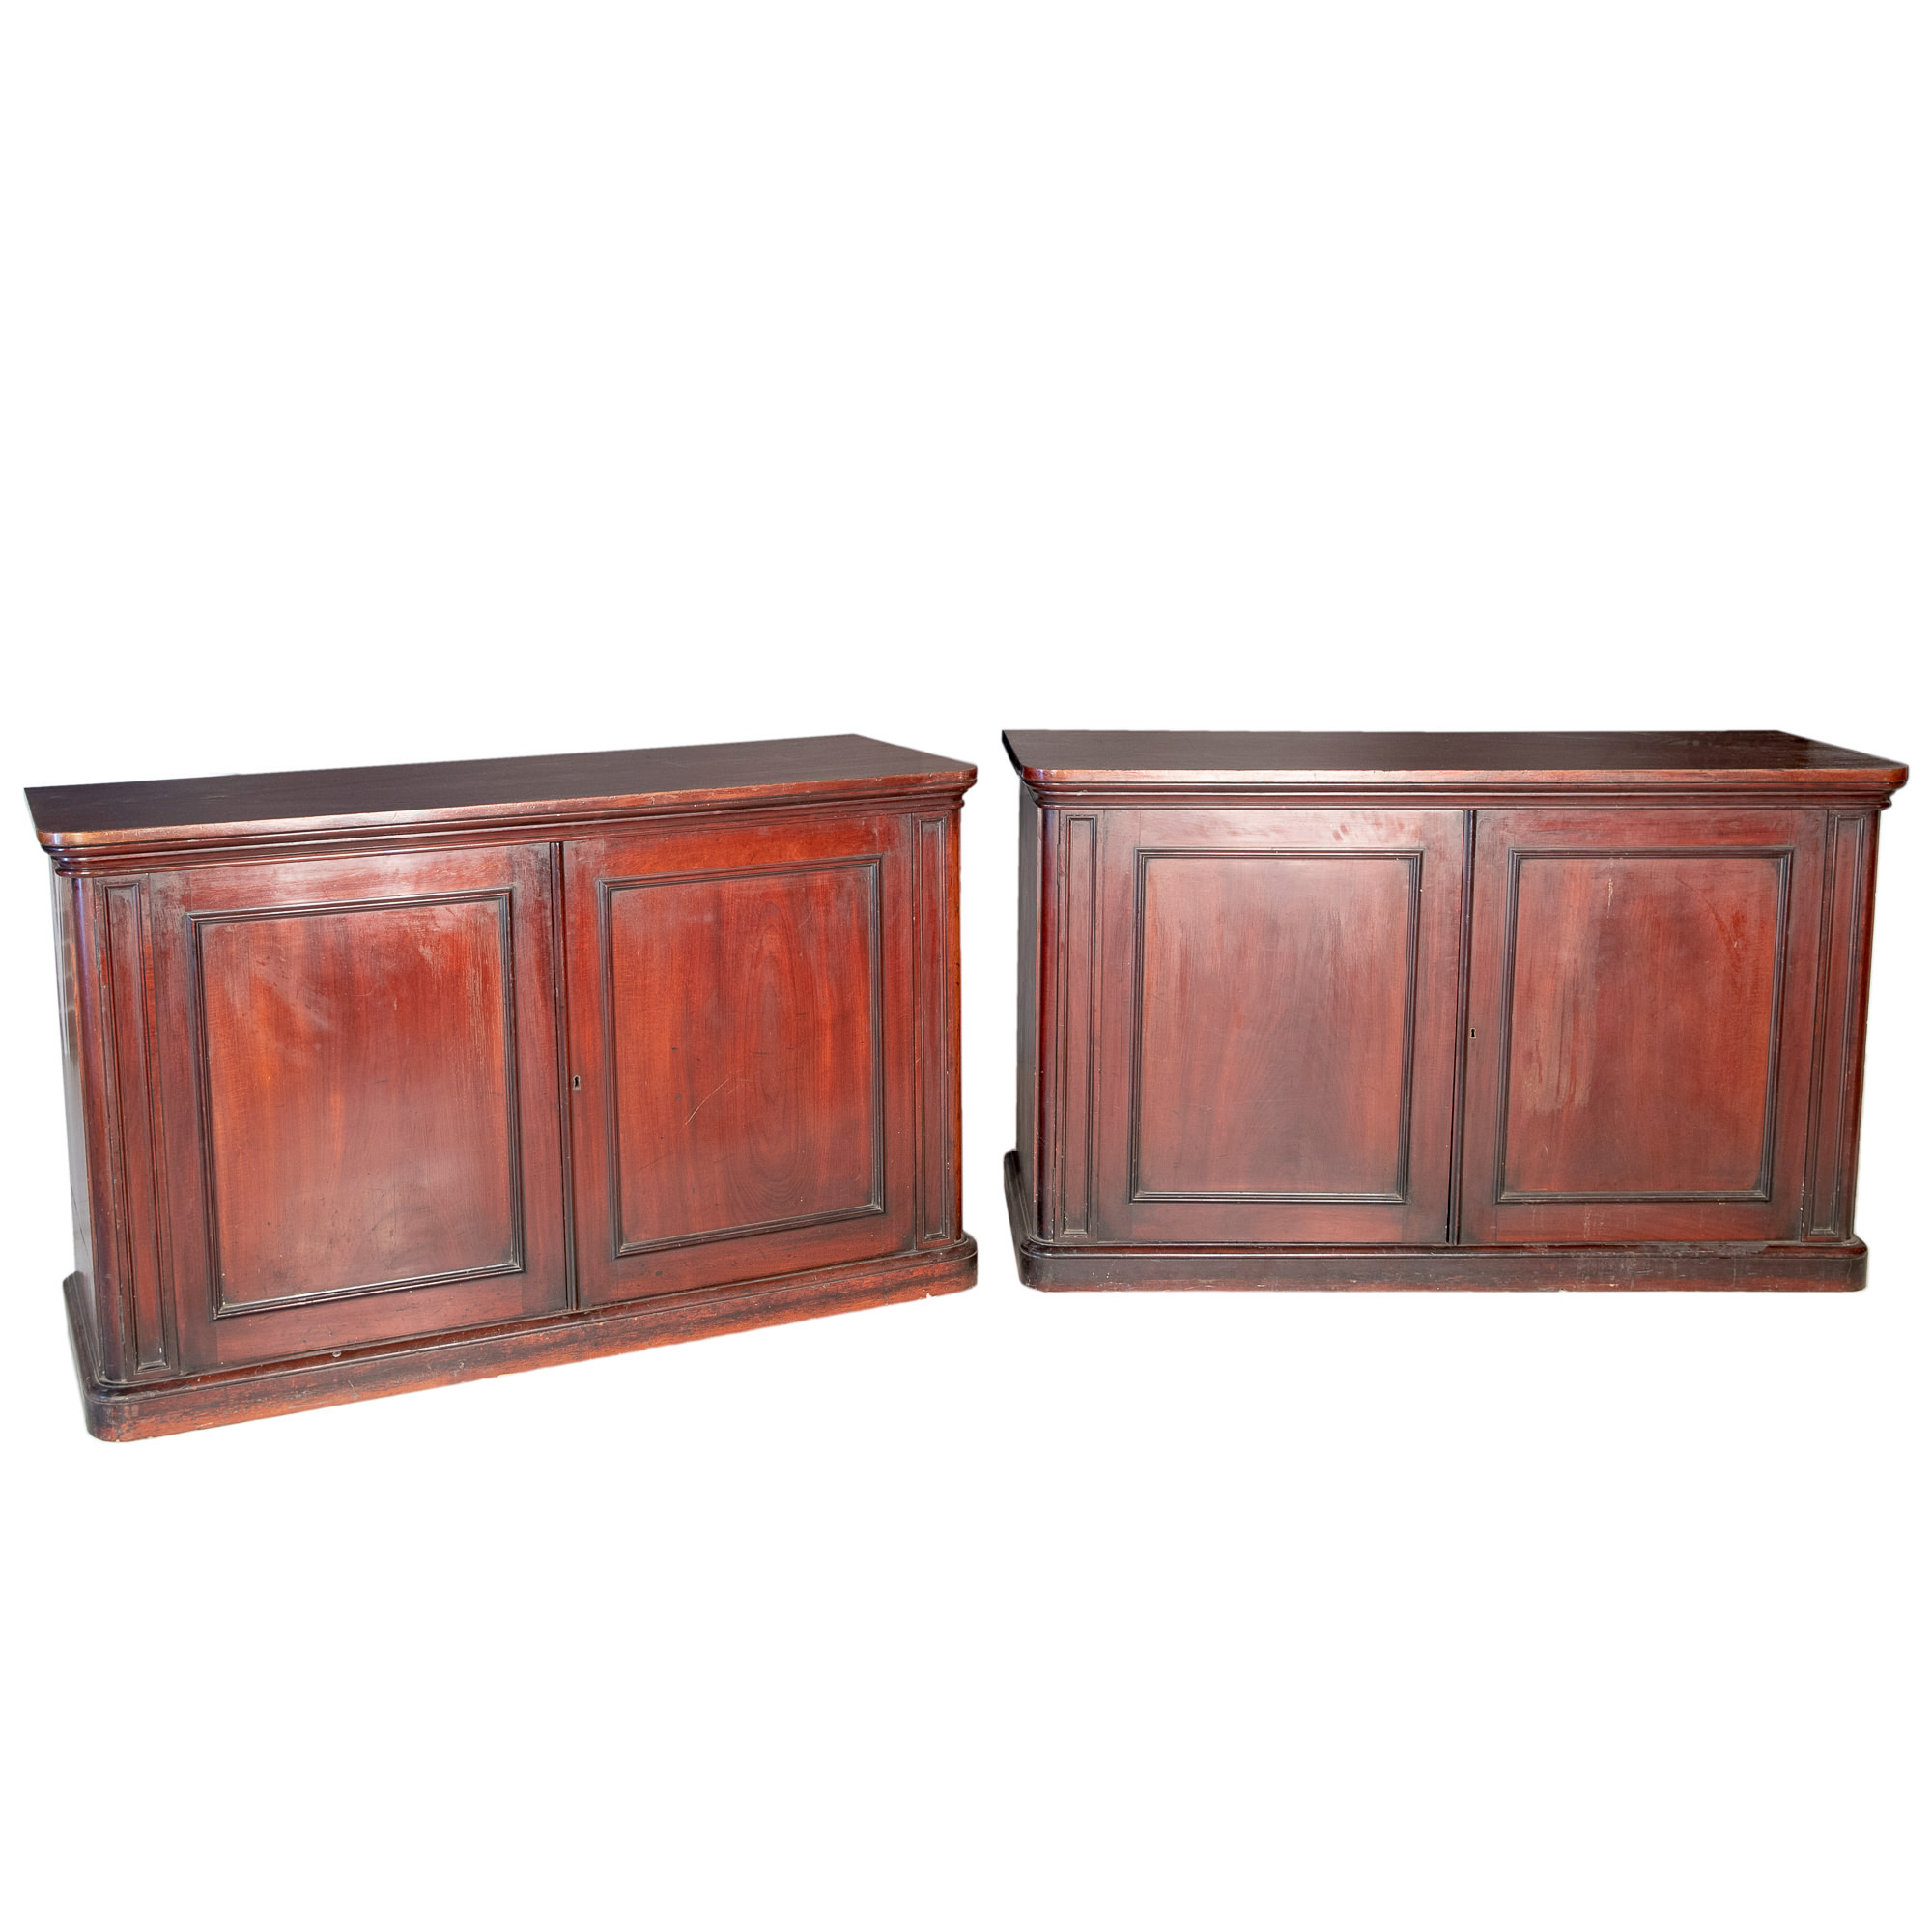 'Impressive Pair of English Mahogany Collector Cabinets Late 19th Century'